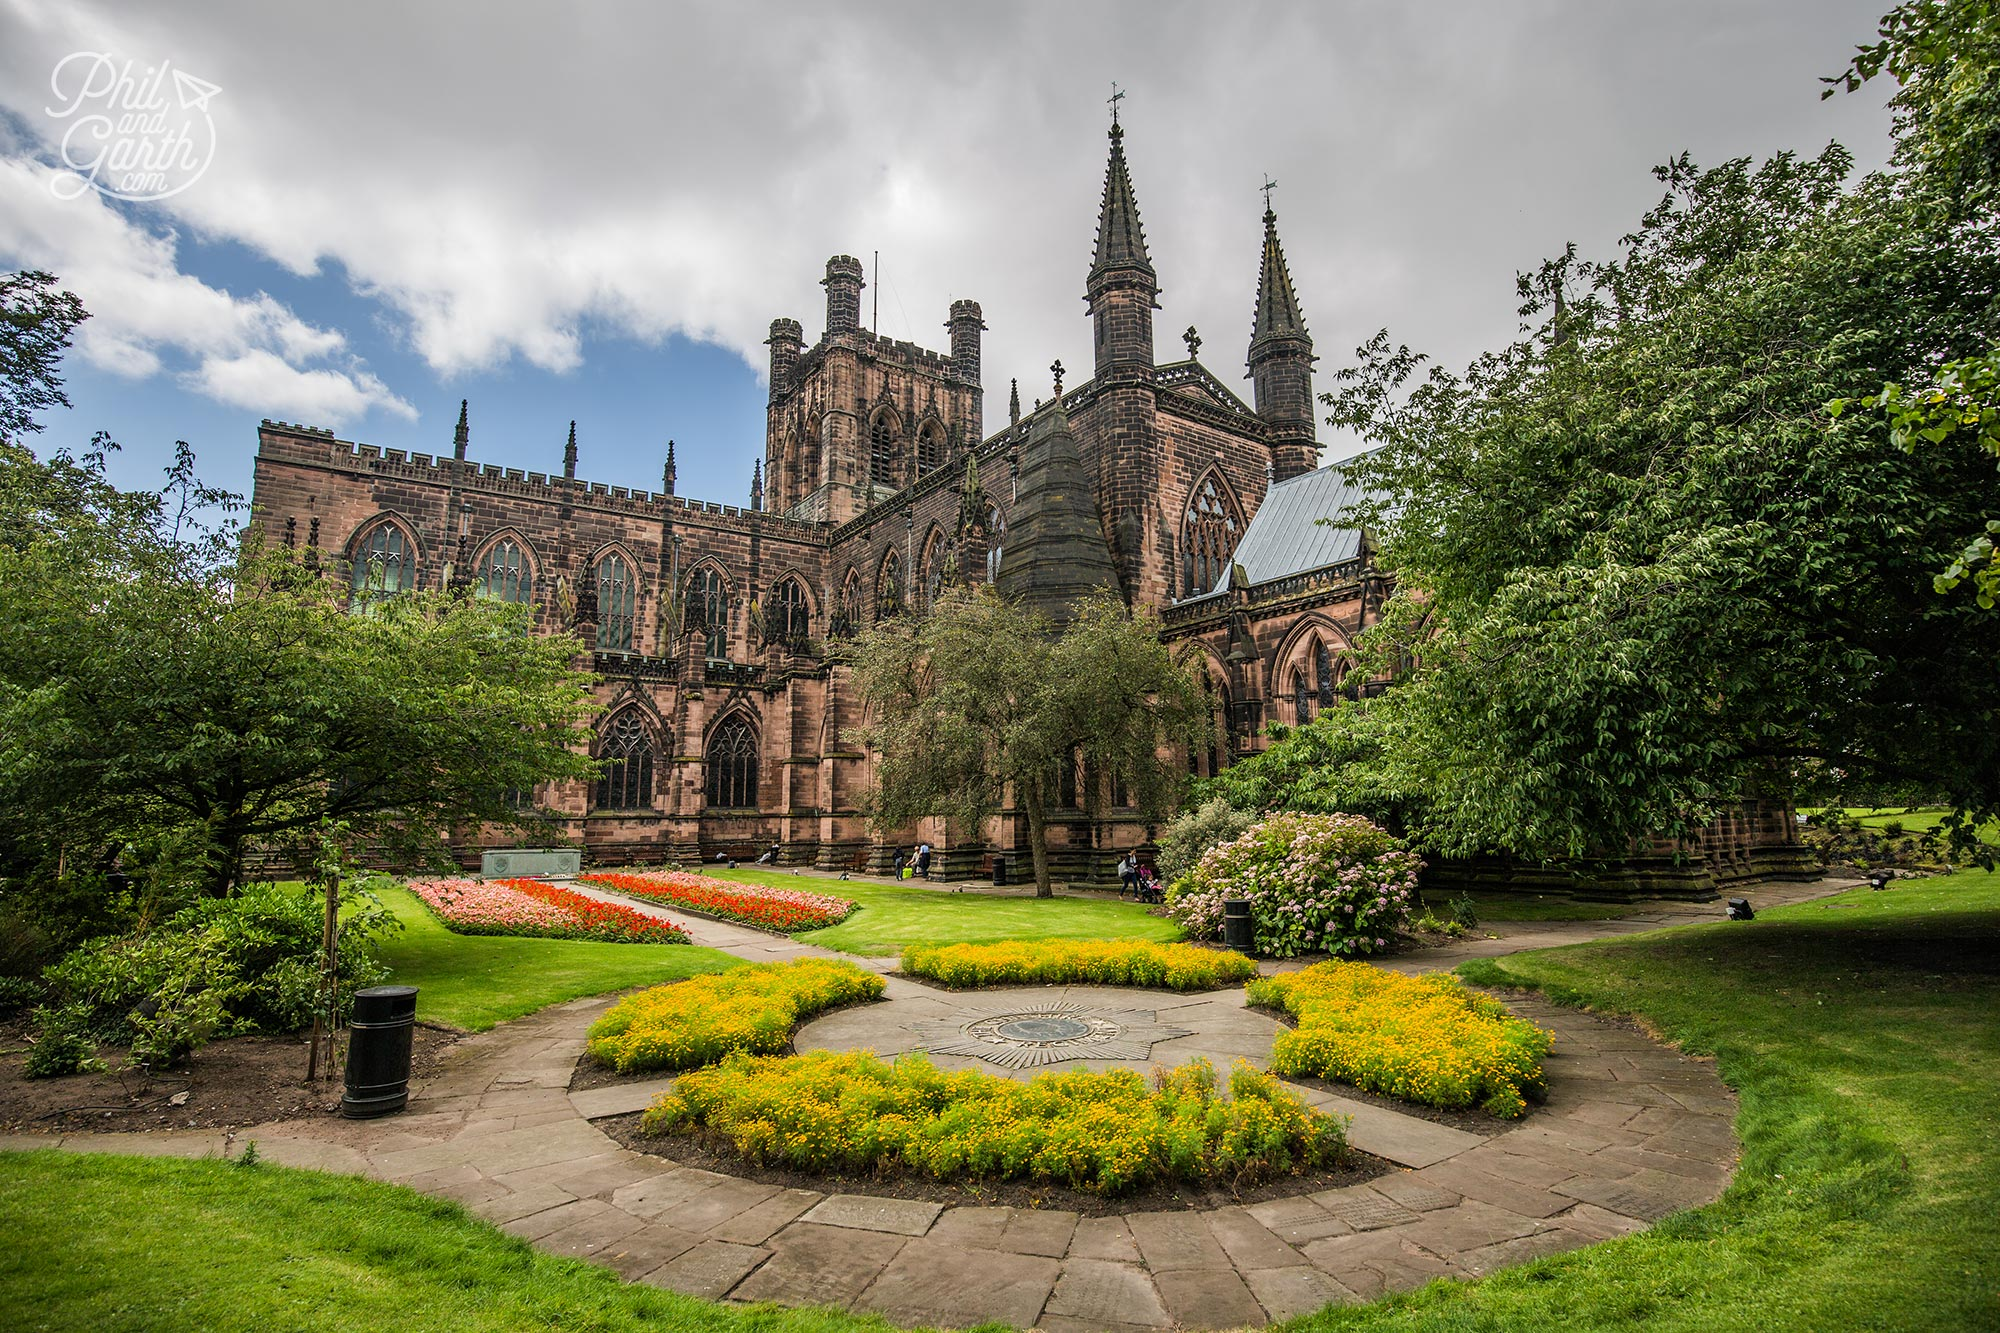 The exterior and gardens of Chester Cathedral